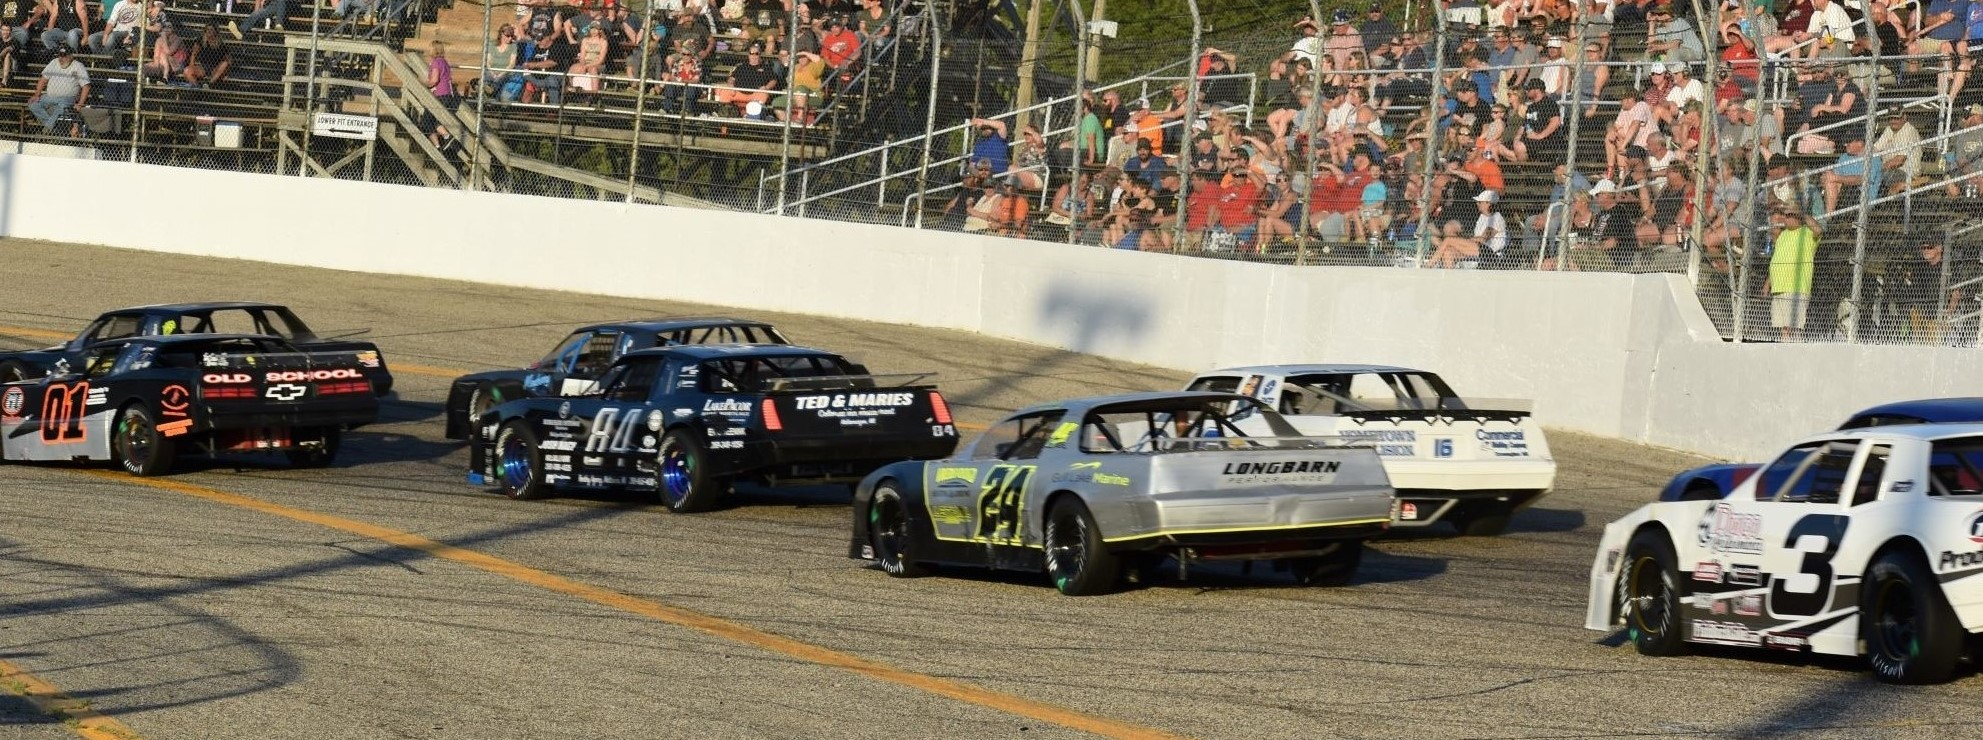 WEEKLY RACING - TLM, SS, FWD and the ZOO Stock Race